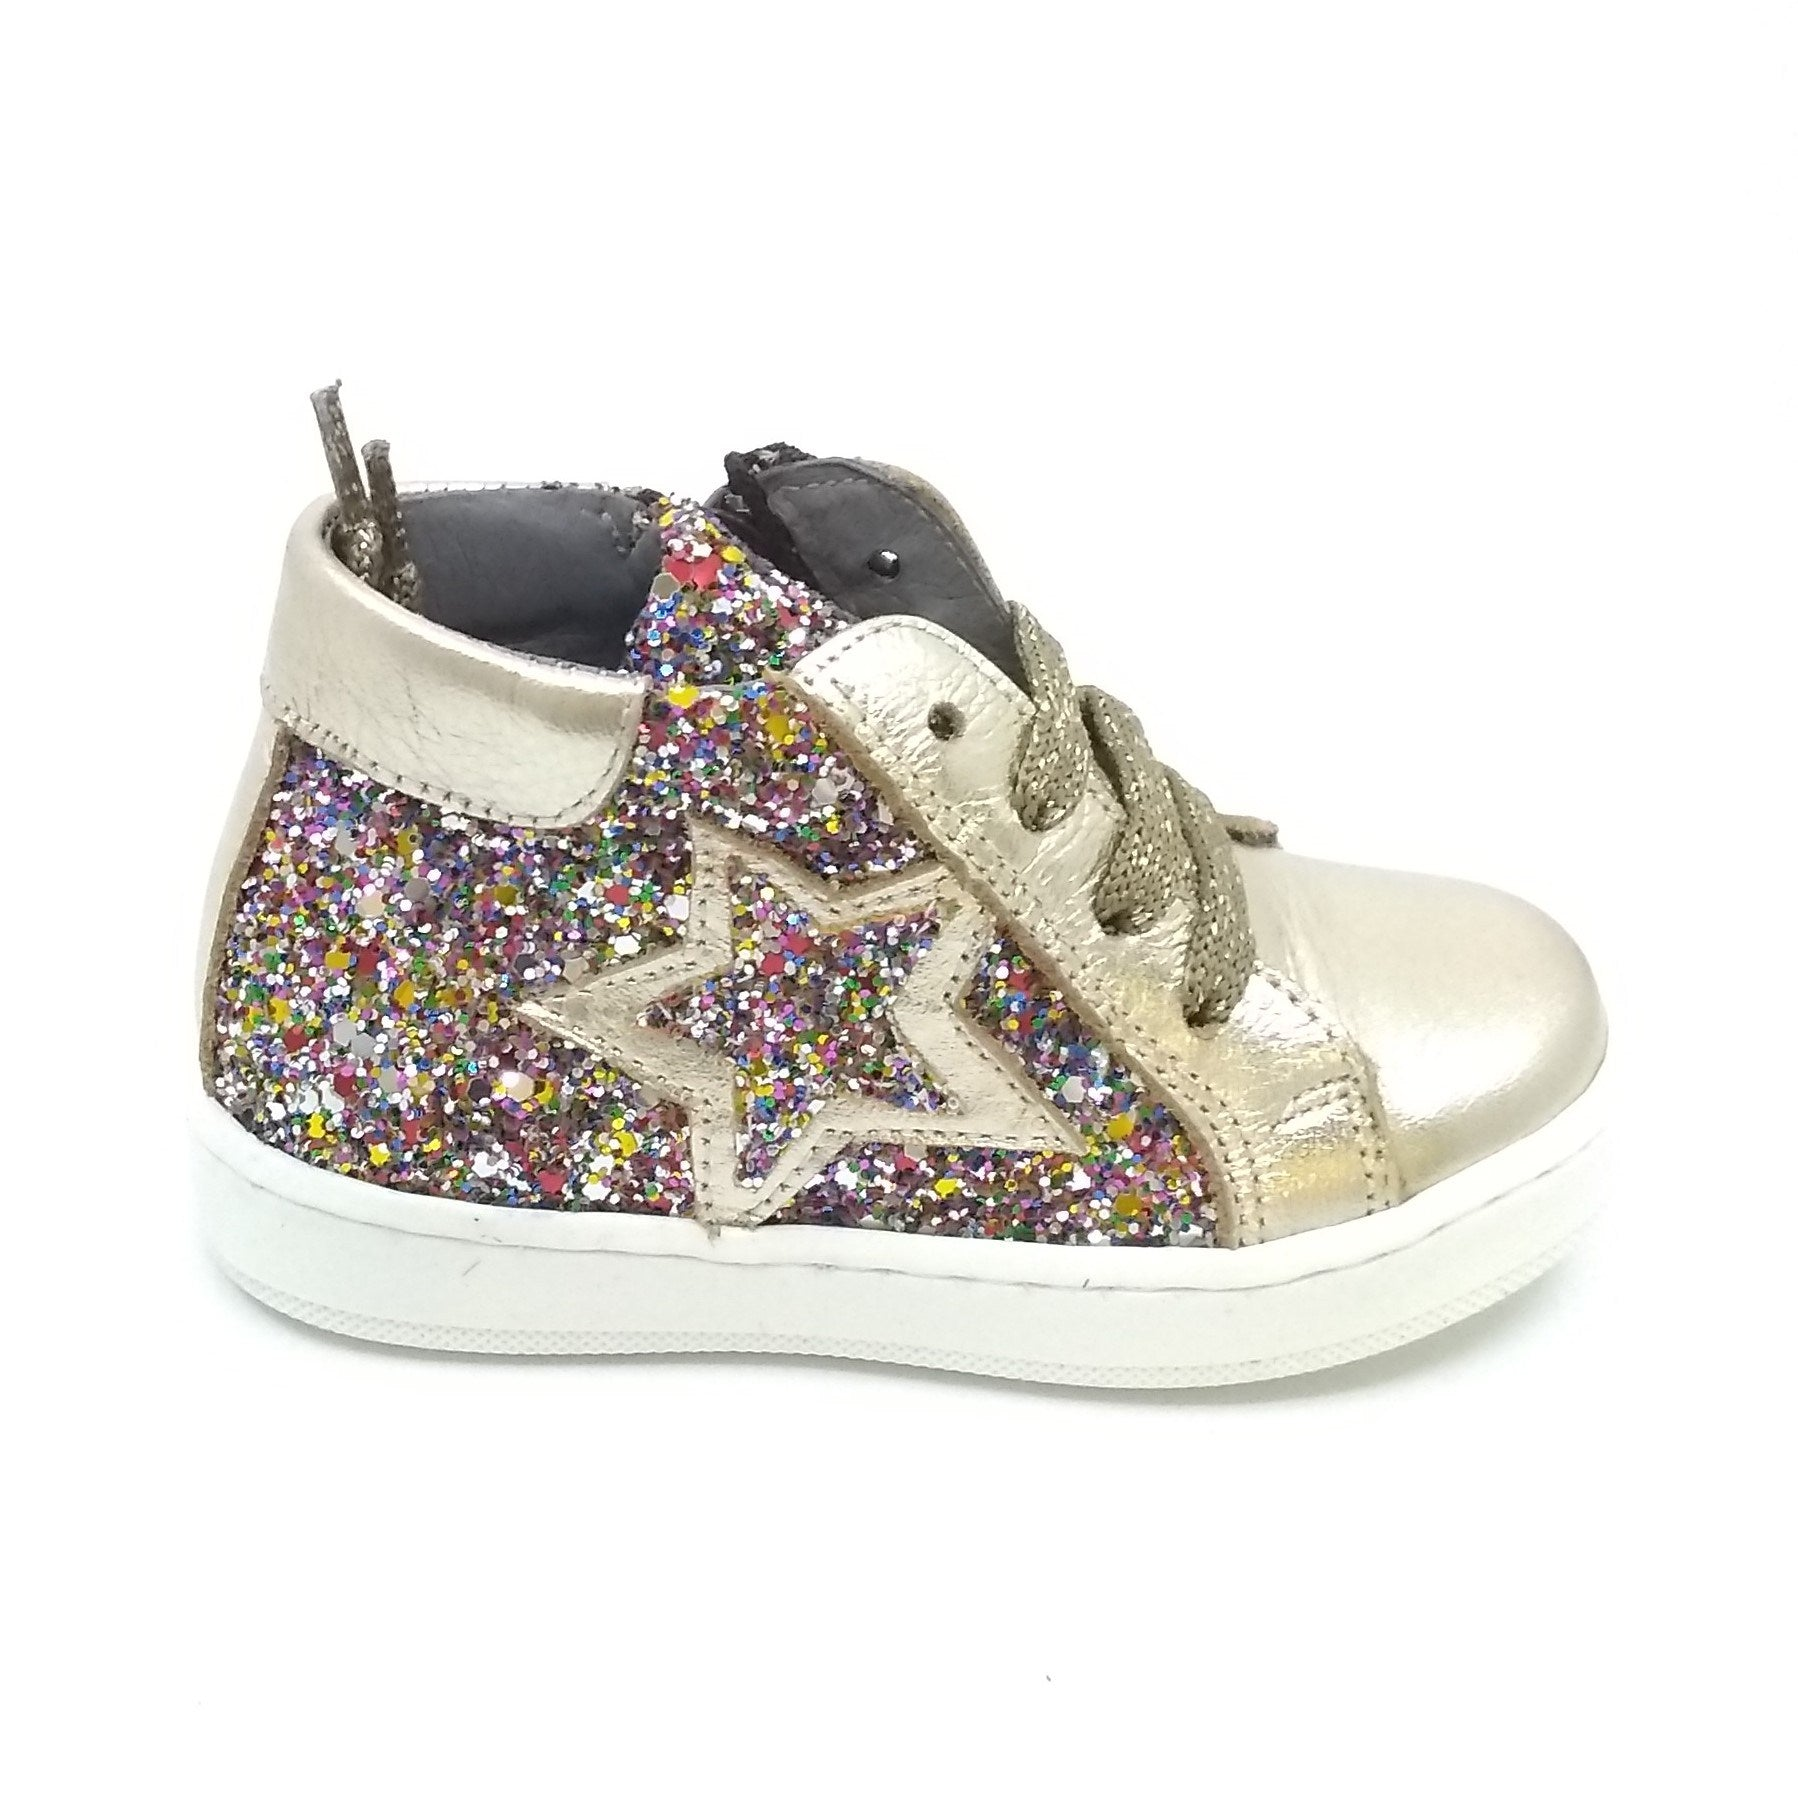 c6a8b19112 Blublonc Multi Colored Sparkly Sneaker with Gold Trim and Star